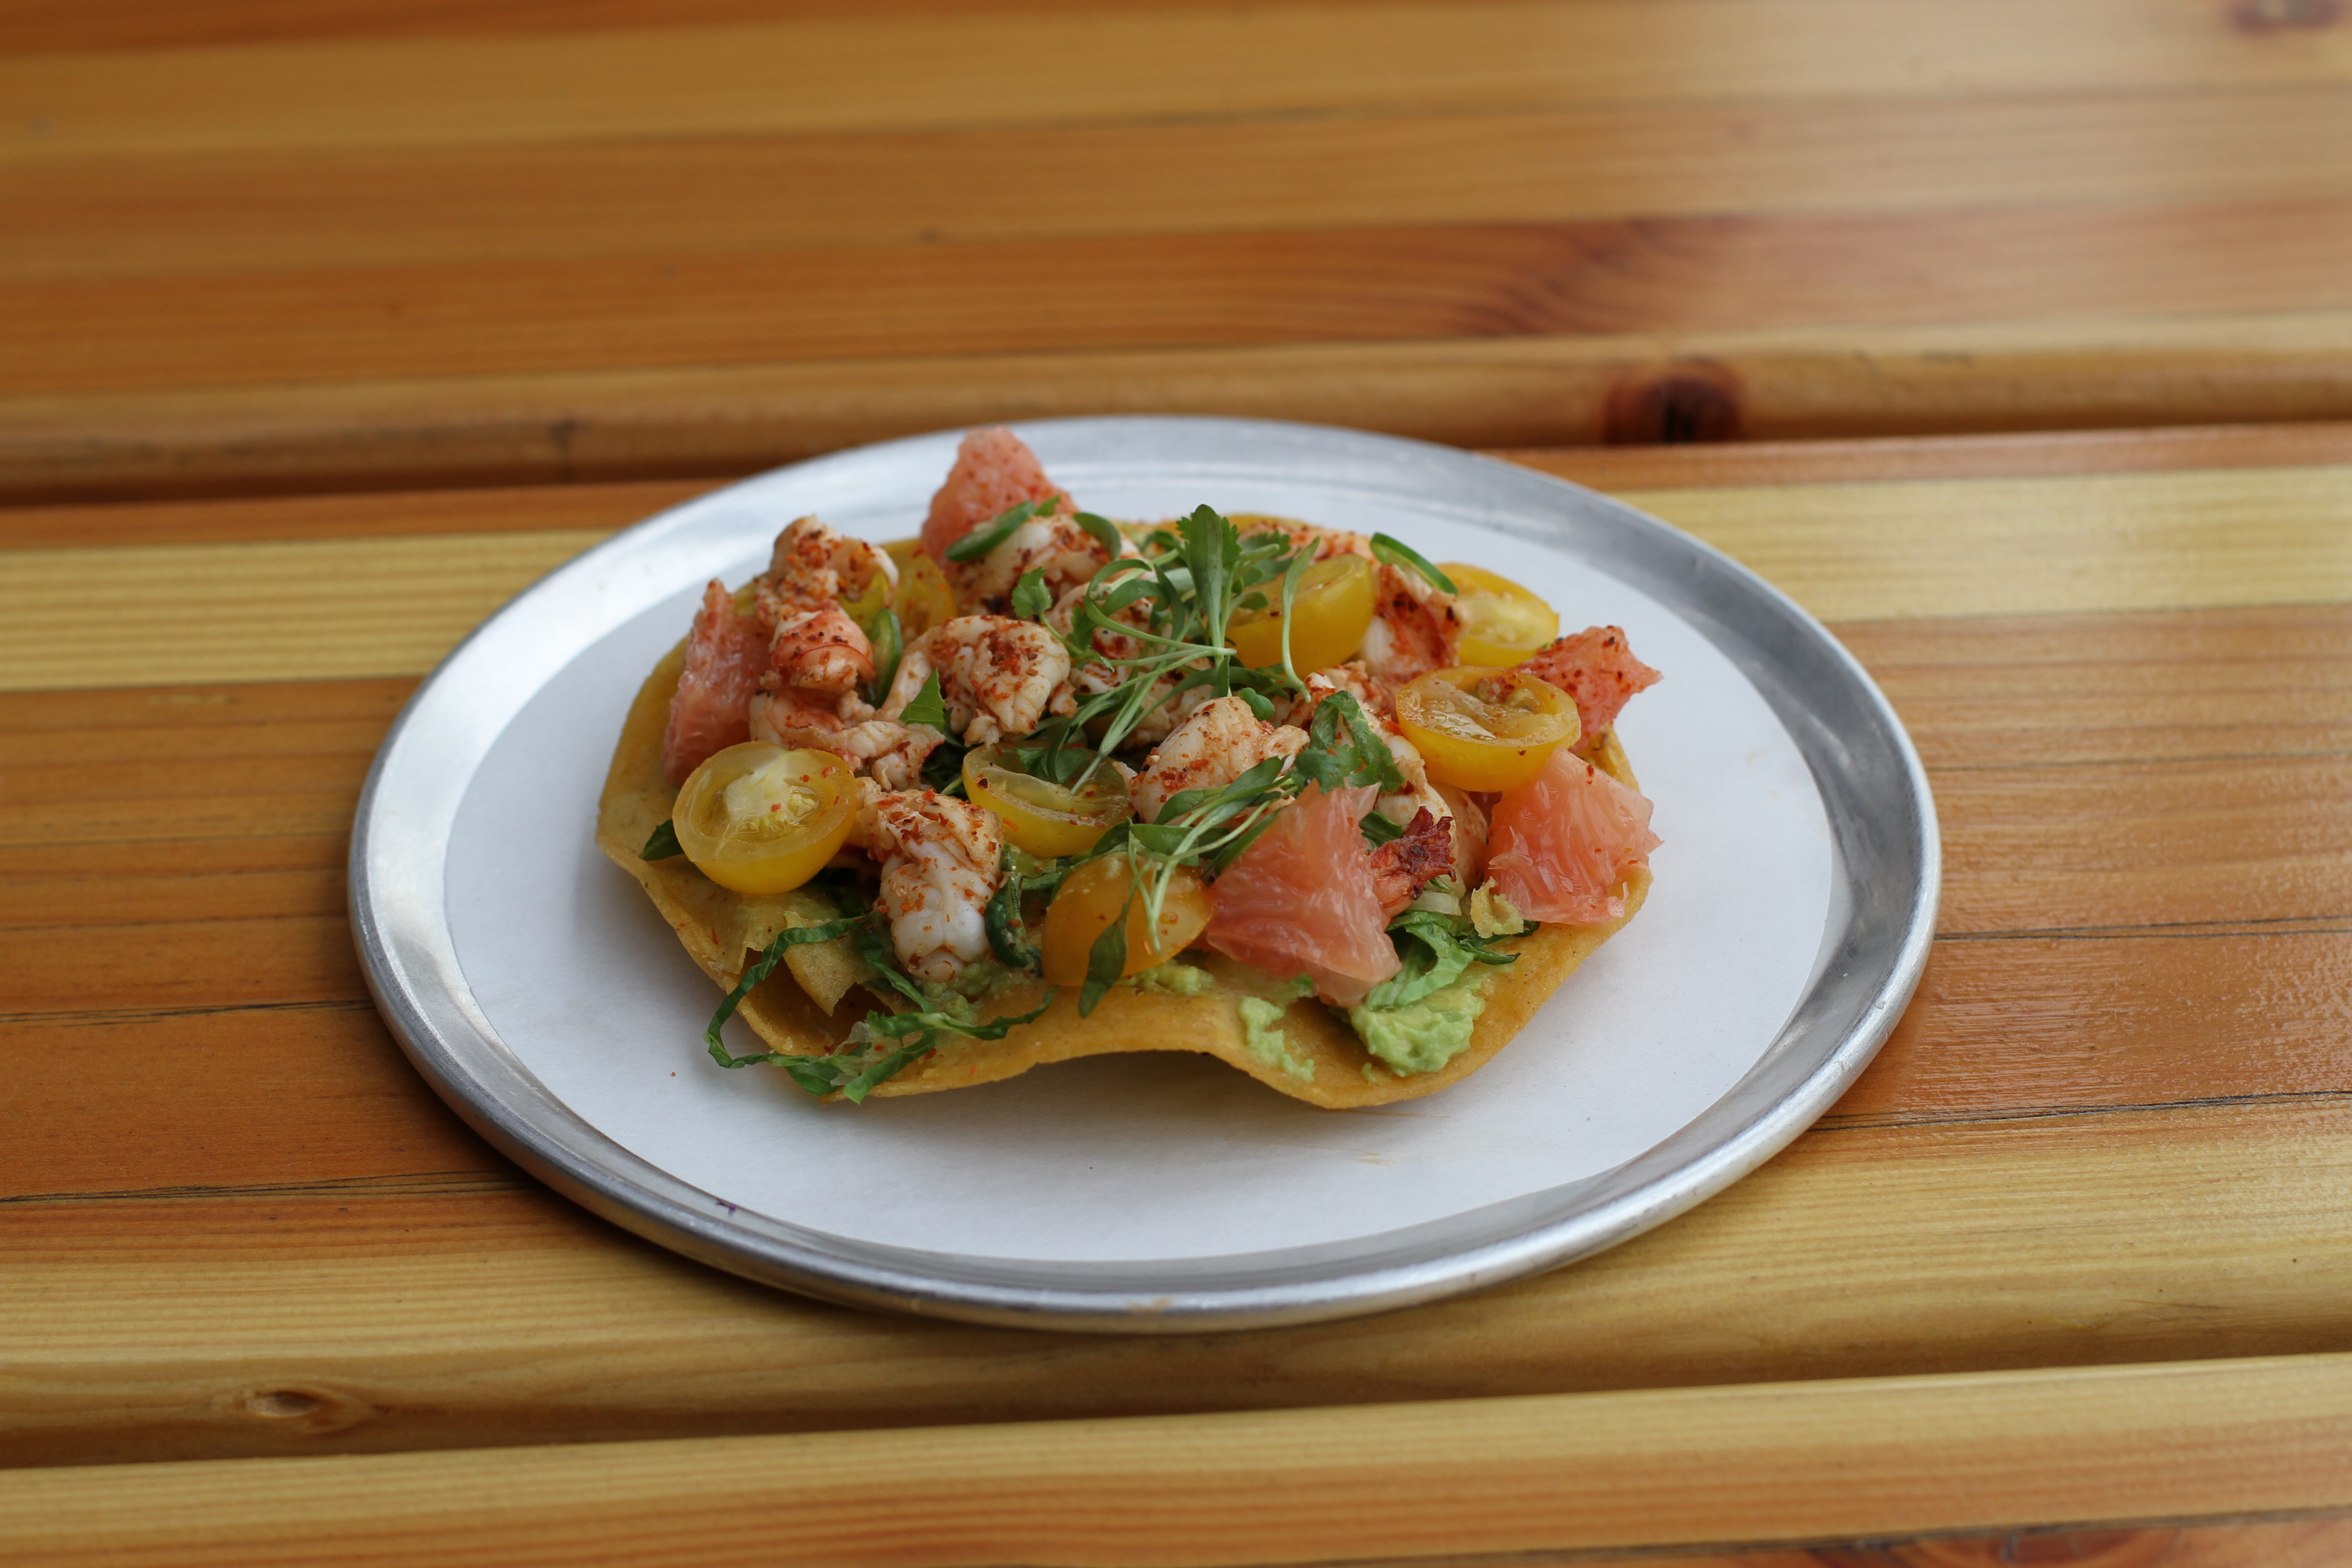 Grilled Mexican White Shrimp Tostada |© Jim Busfield